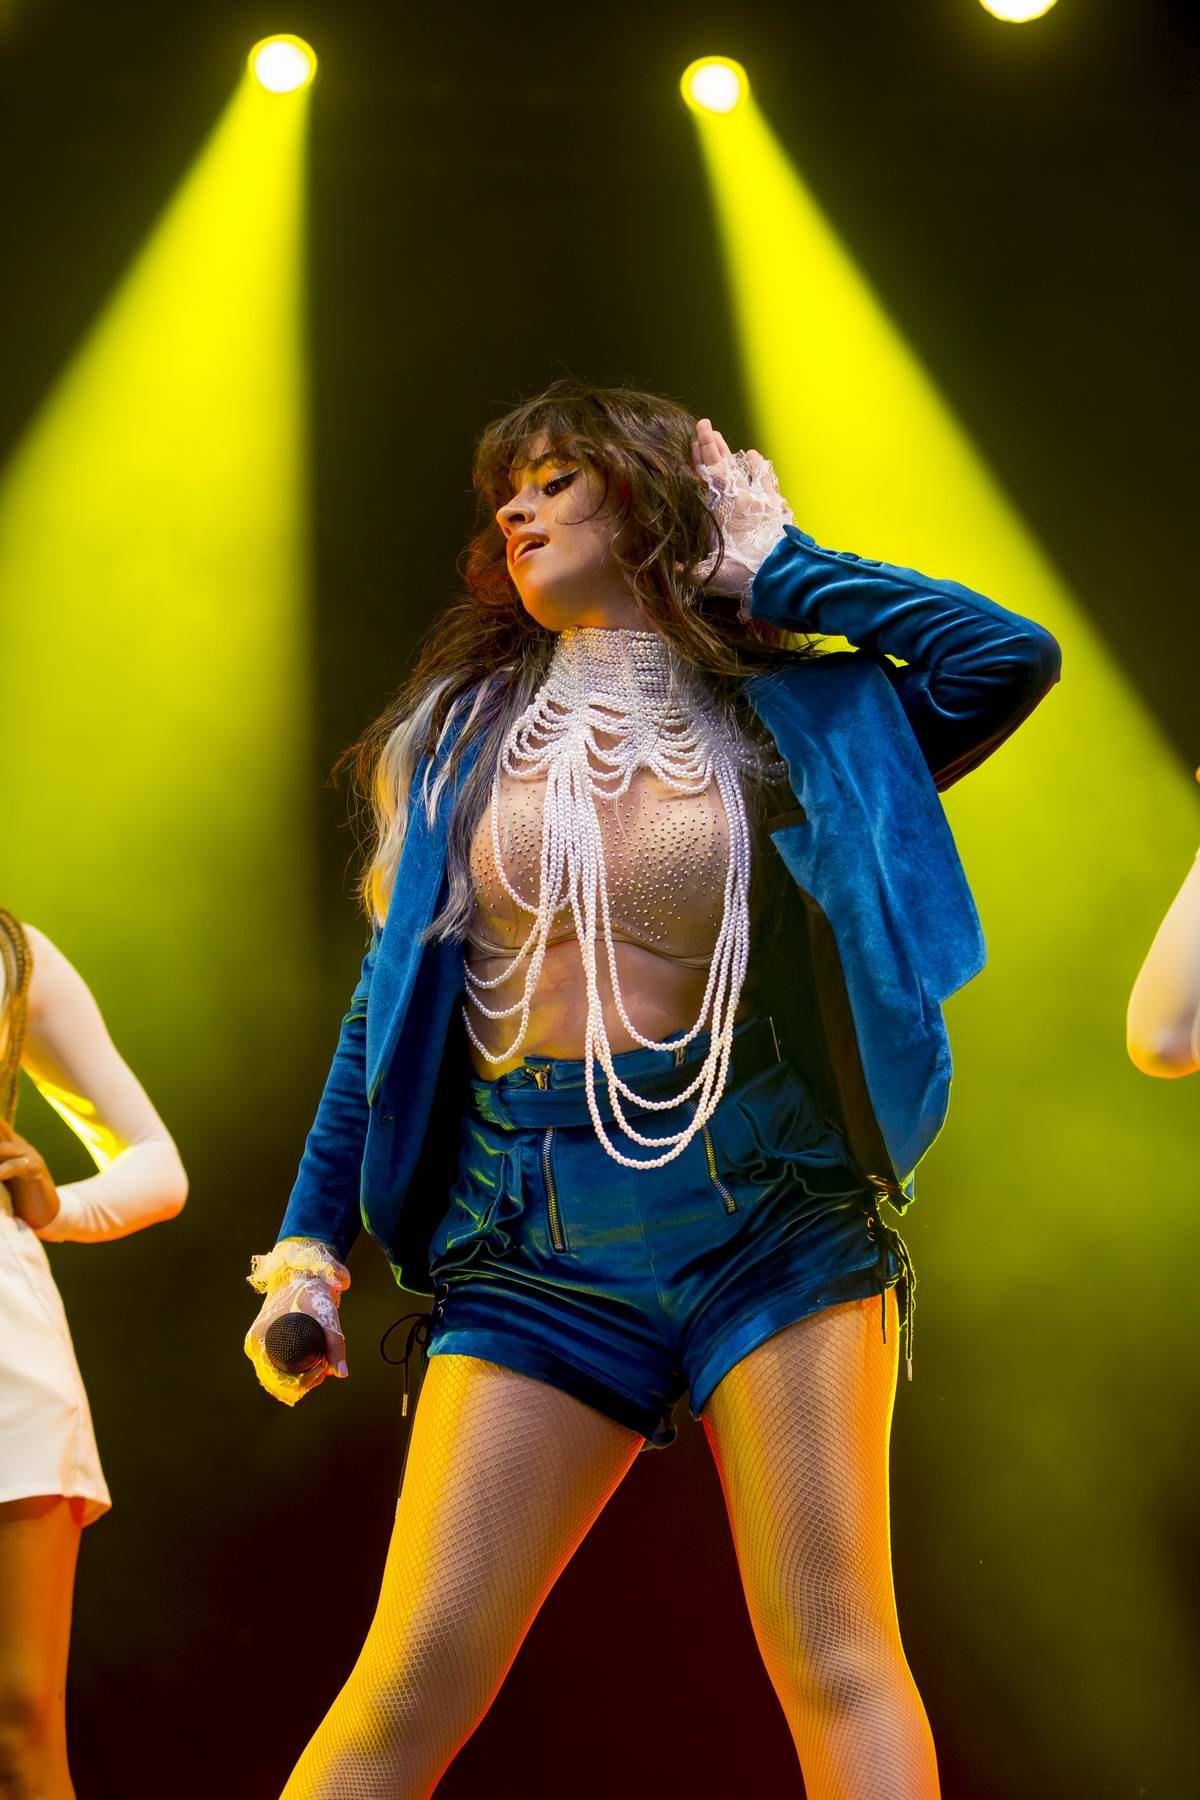 Camila Cabello performs live at 2018 Lollapalooza Chicago Music Festival in Chicago, Illinois